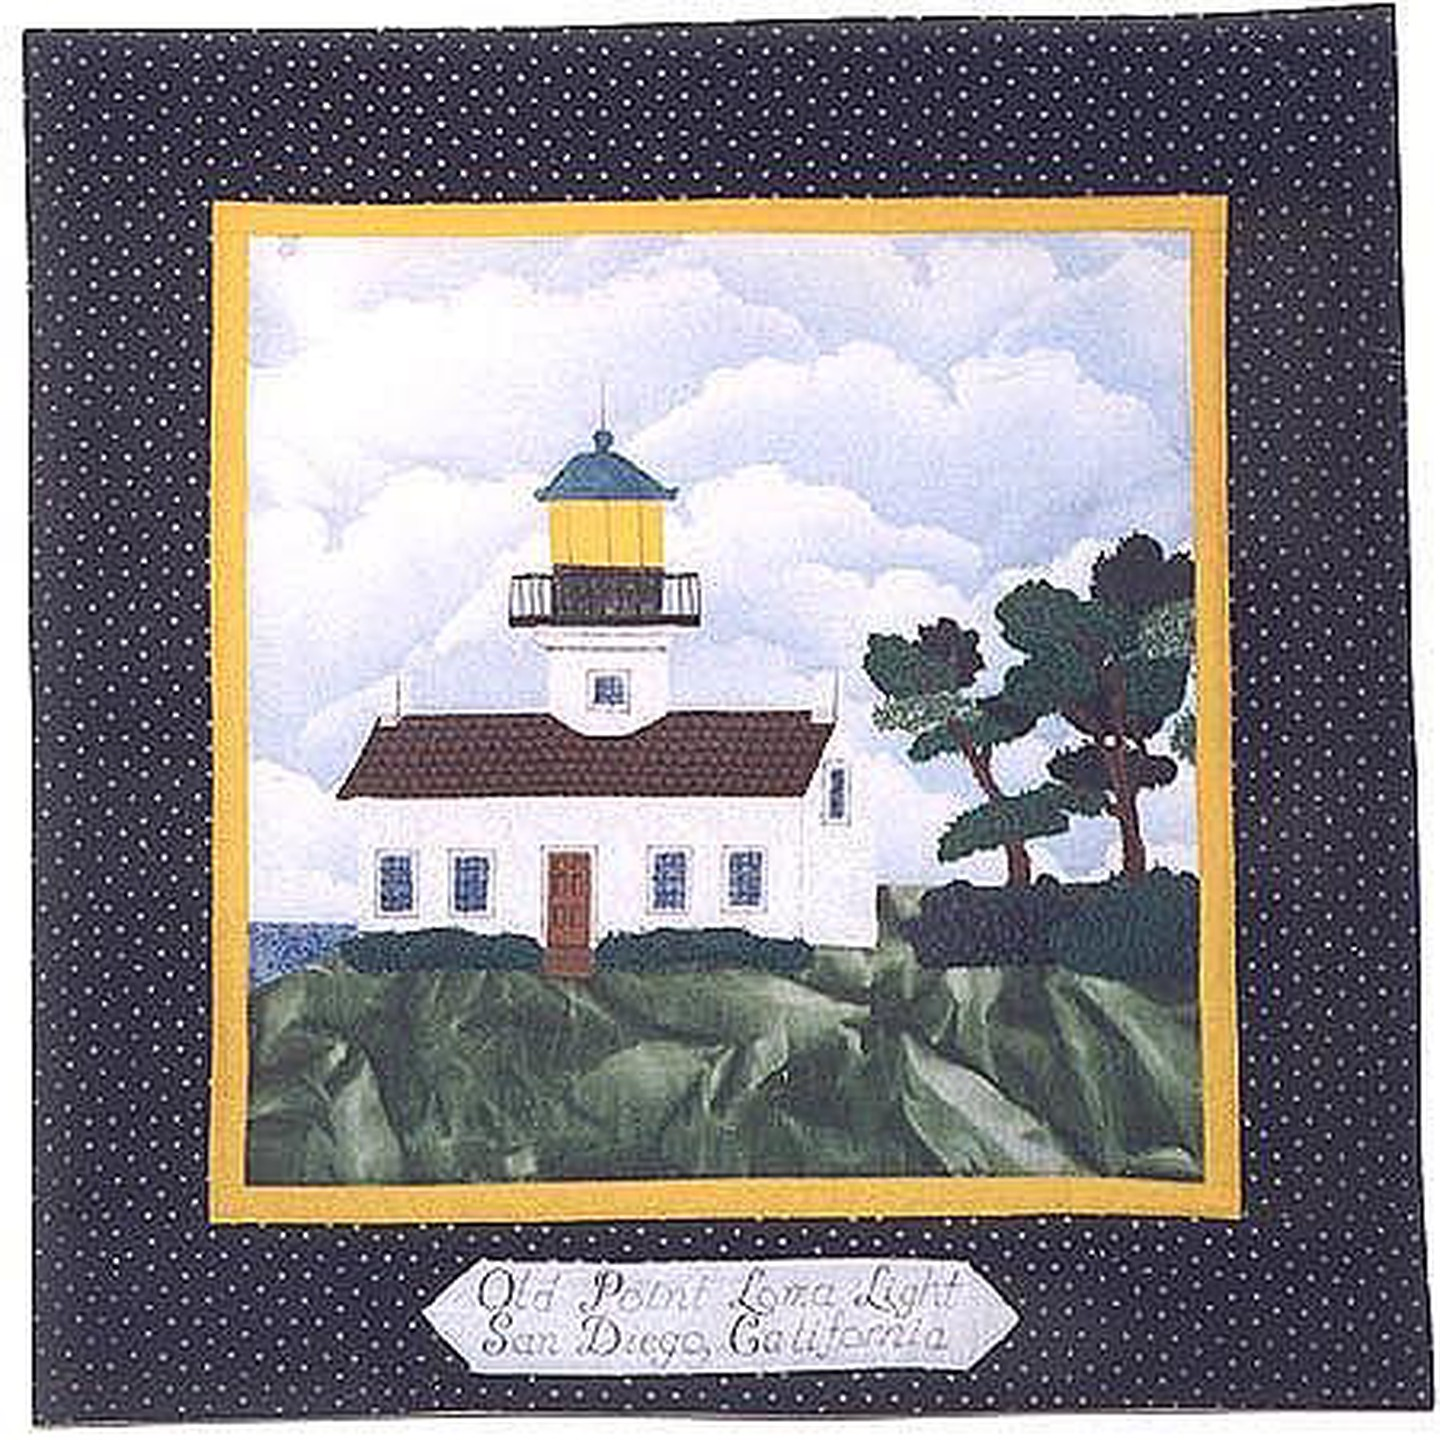 Old Point Loma Lighthouse, California